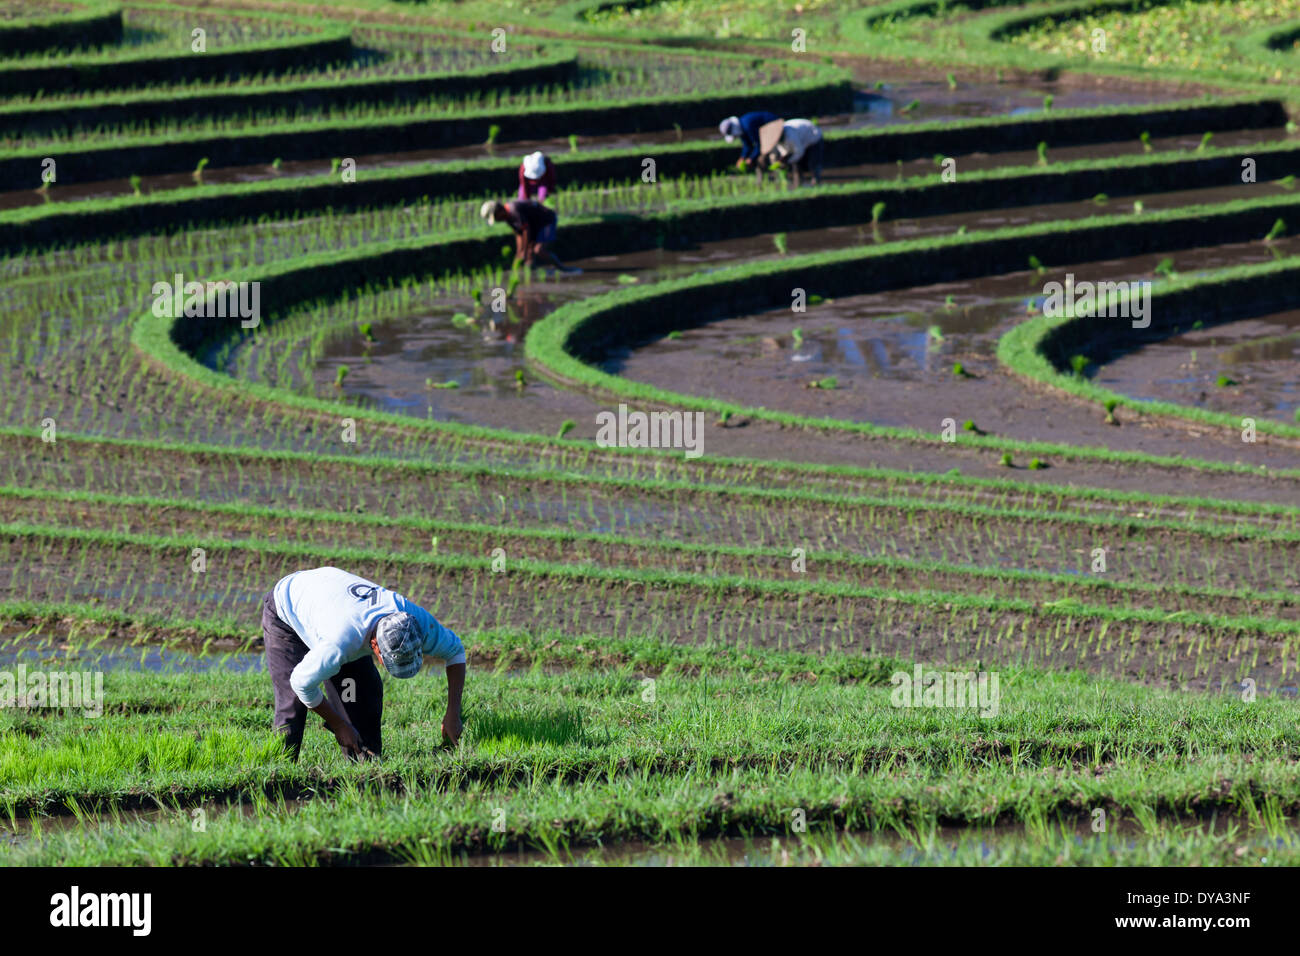 People working on rice field in region of Antosari and Belimbing (probably closer to Antosari), Bali, Indonesia - Stock Image